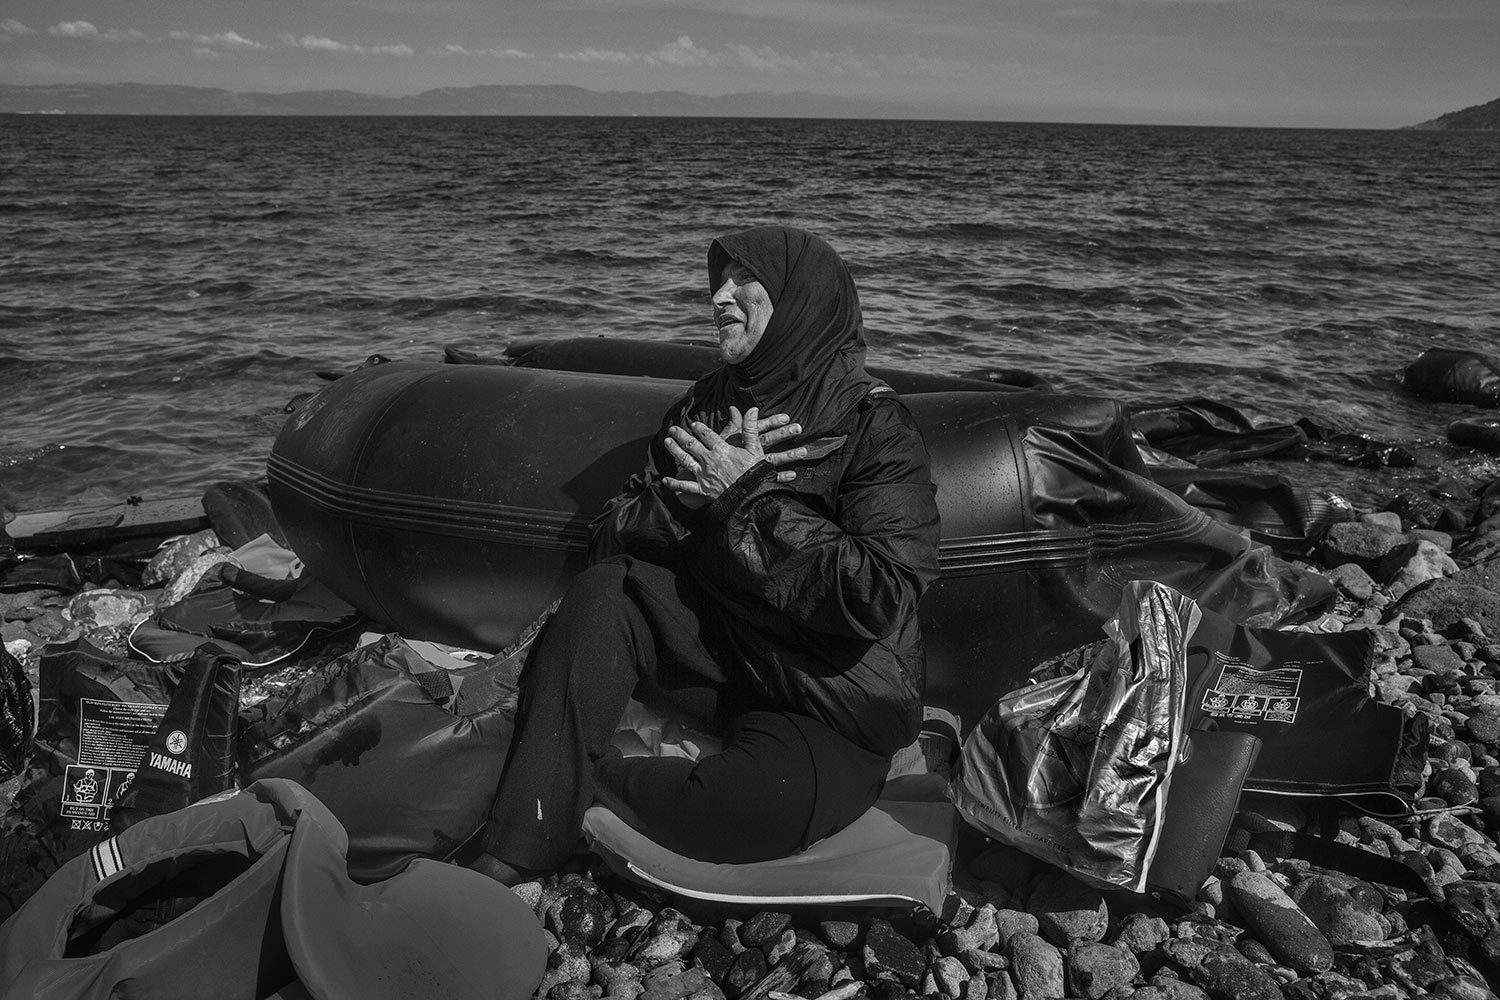 Leaving behind everything they've ever known, migrants arrive on the beach in Lesbos, Greece with little or no possessions. A woman sits on the beach recovering  from the sea journey, Sept. 27, 2015.